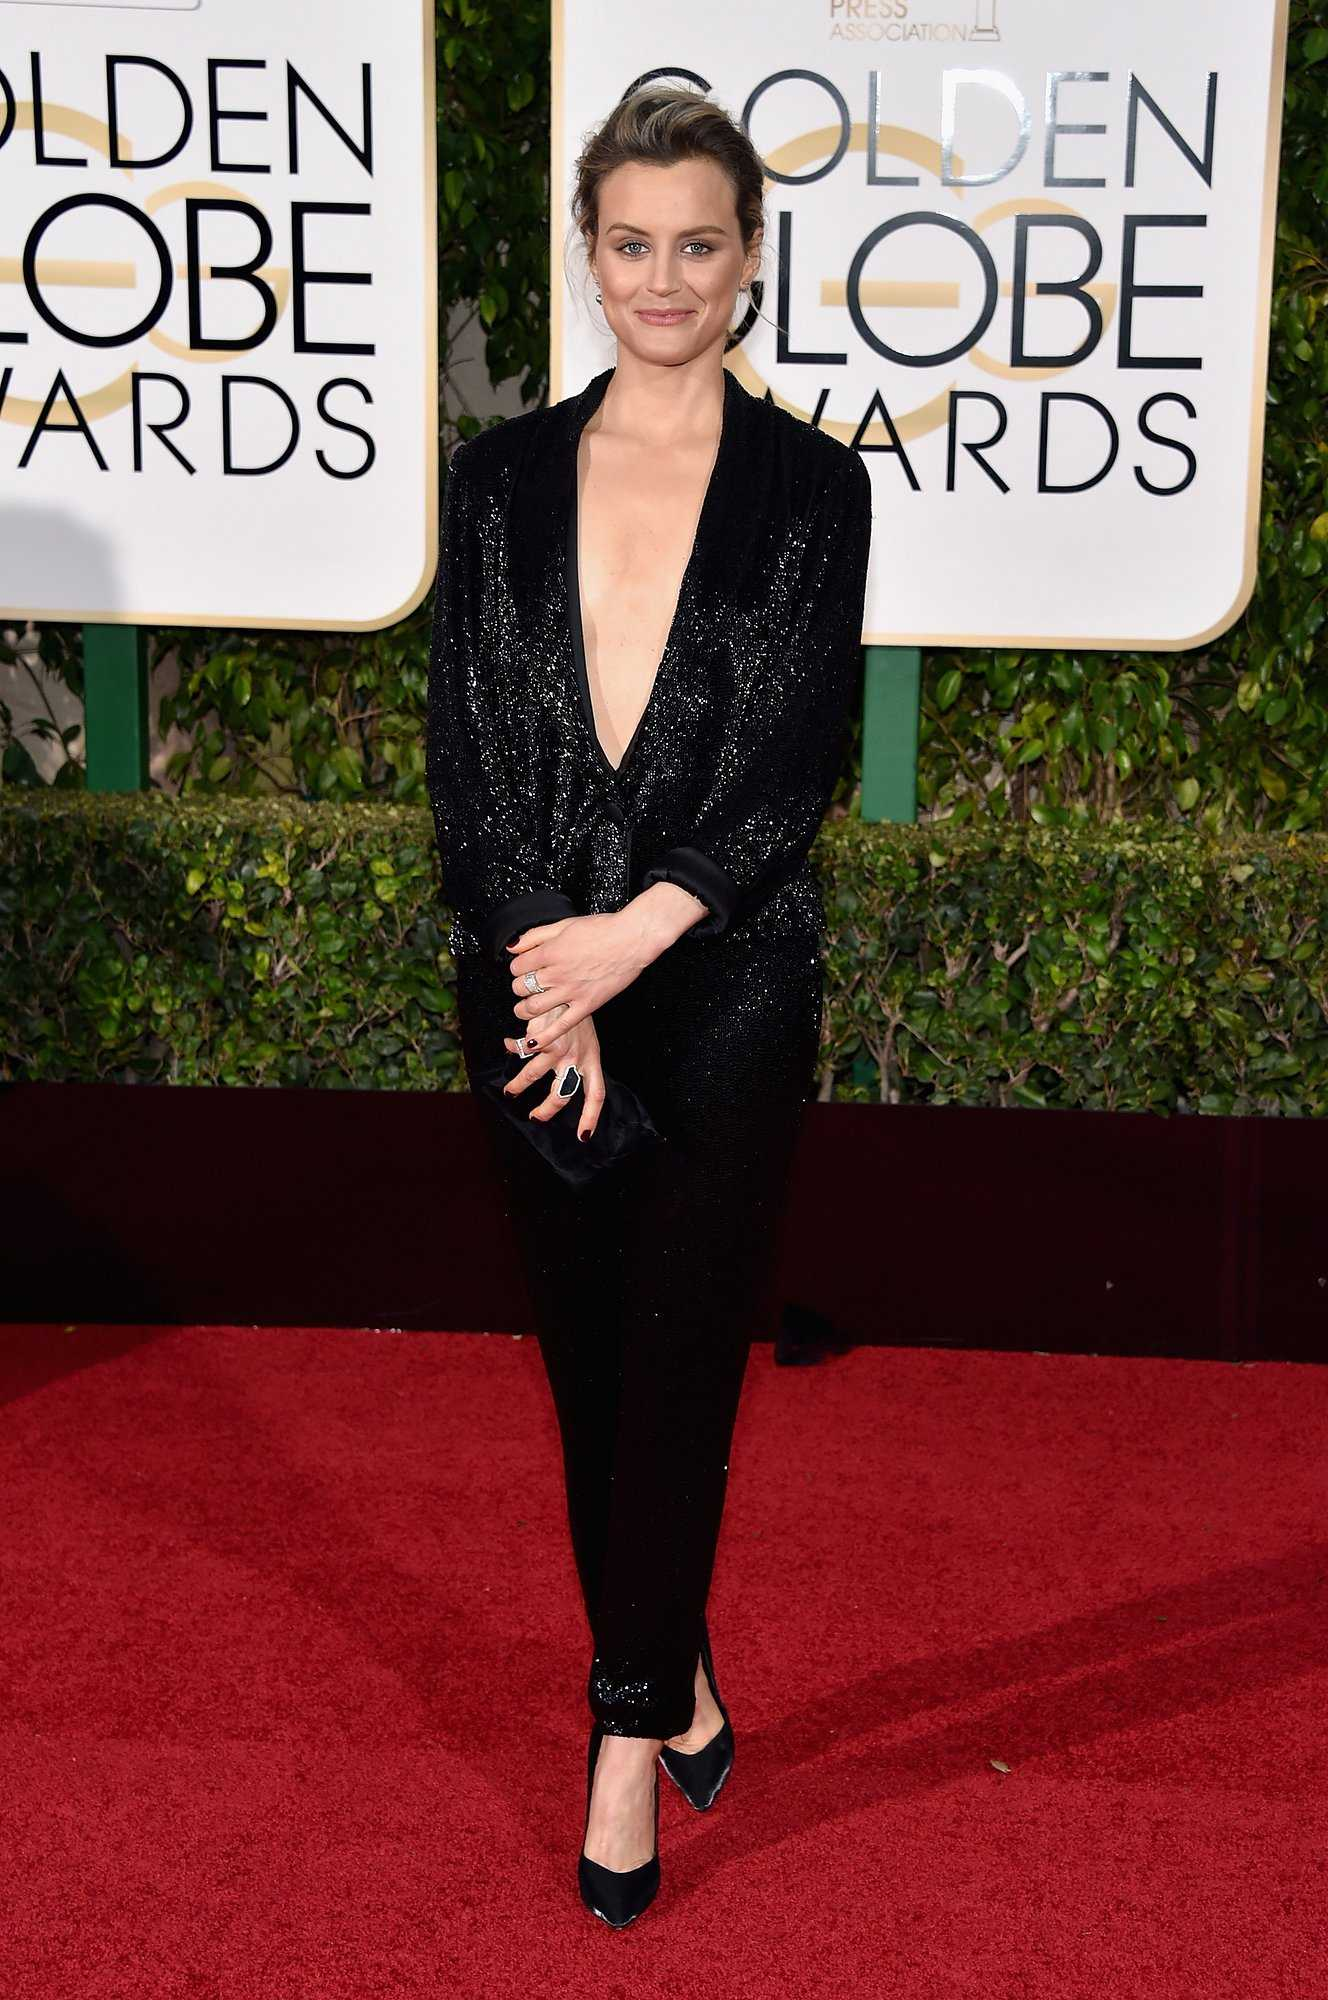 6 Fashion Trends From The 2016 Golden Globes Awards That We Loved | Golden Globes